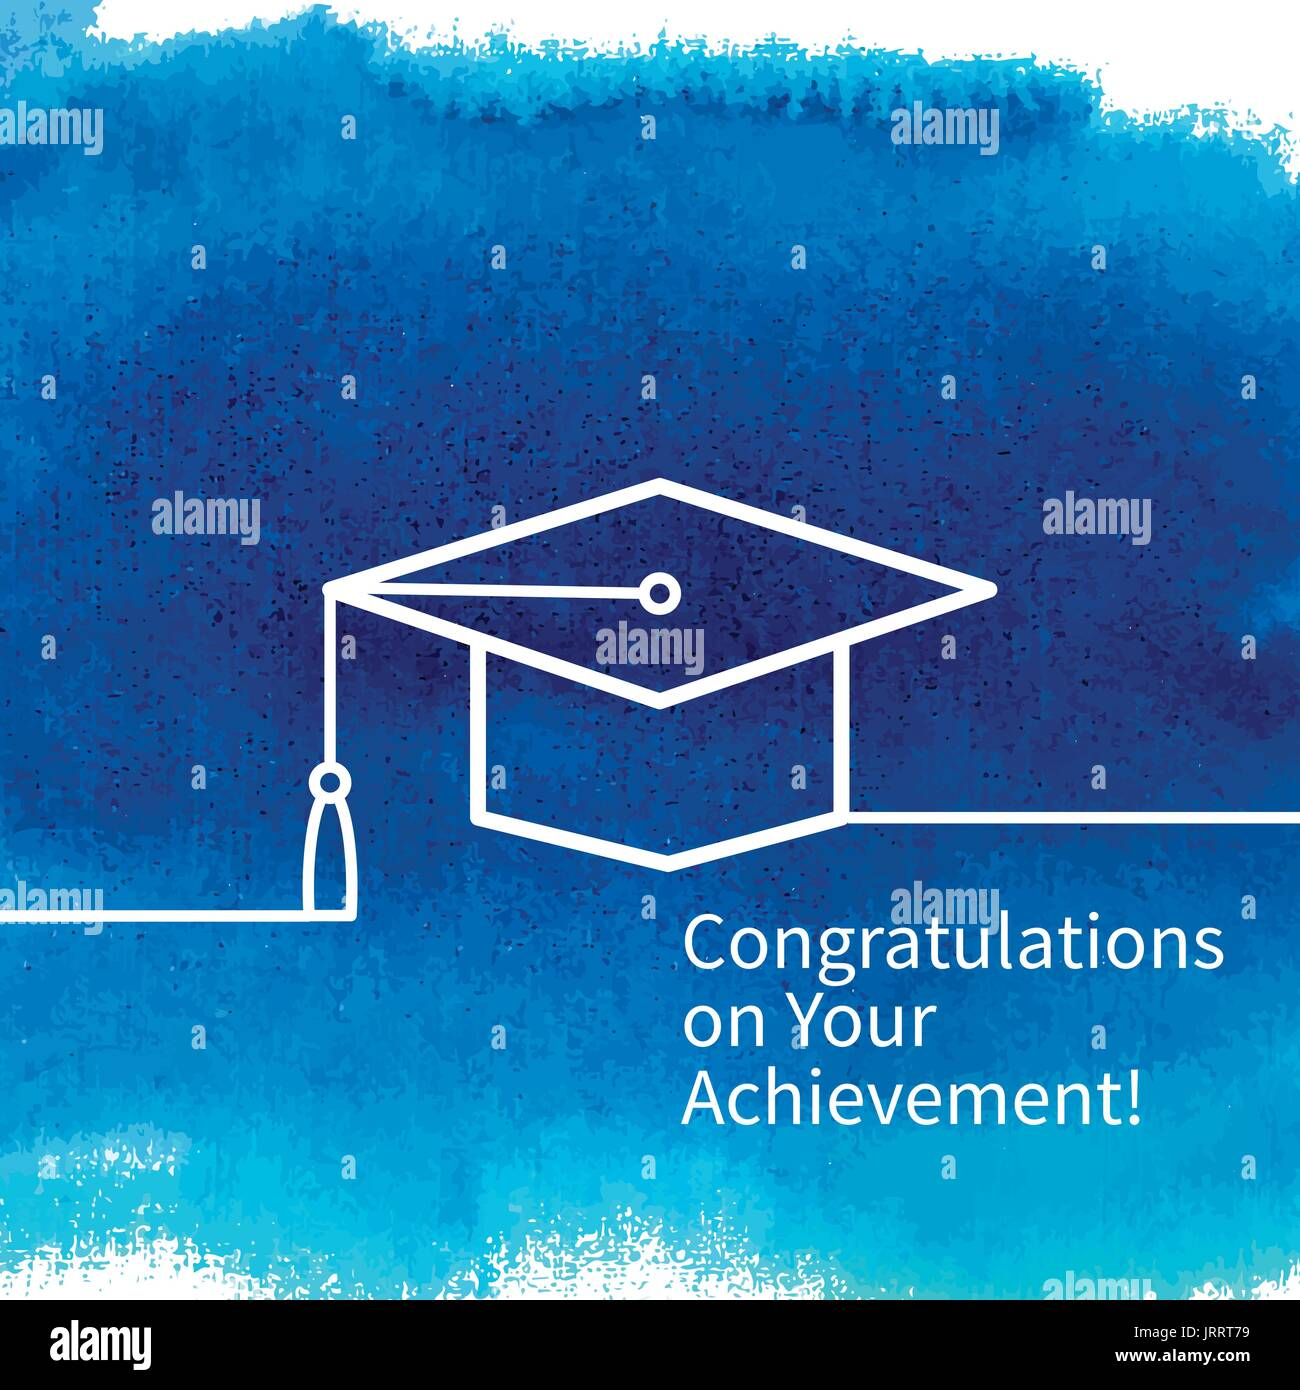 Greeting card with congratulations Graduate completion - Stock Image